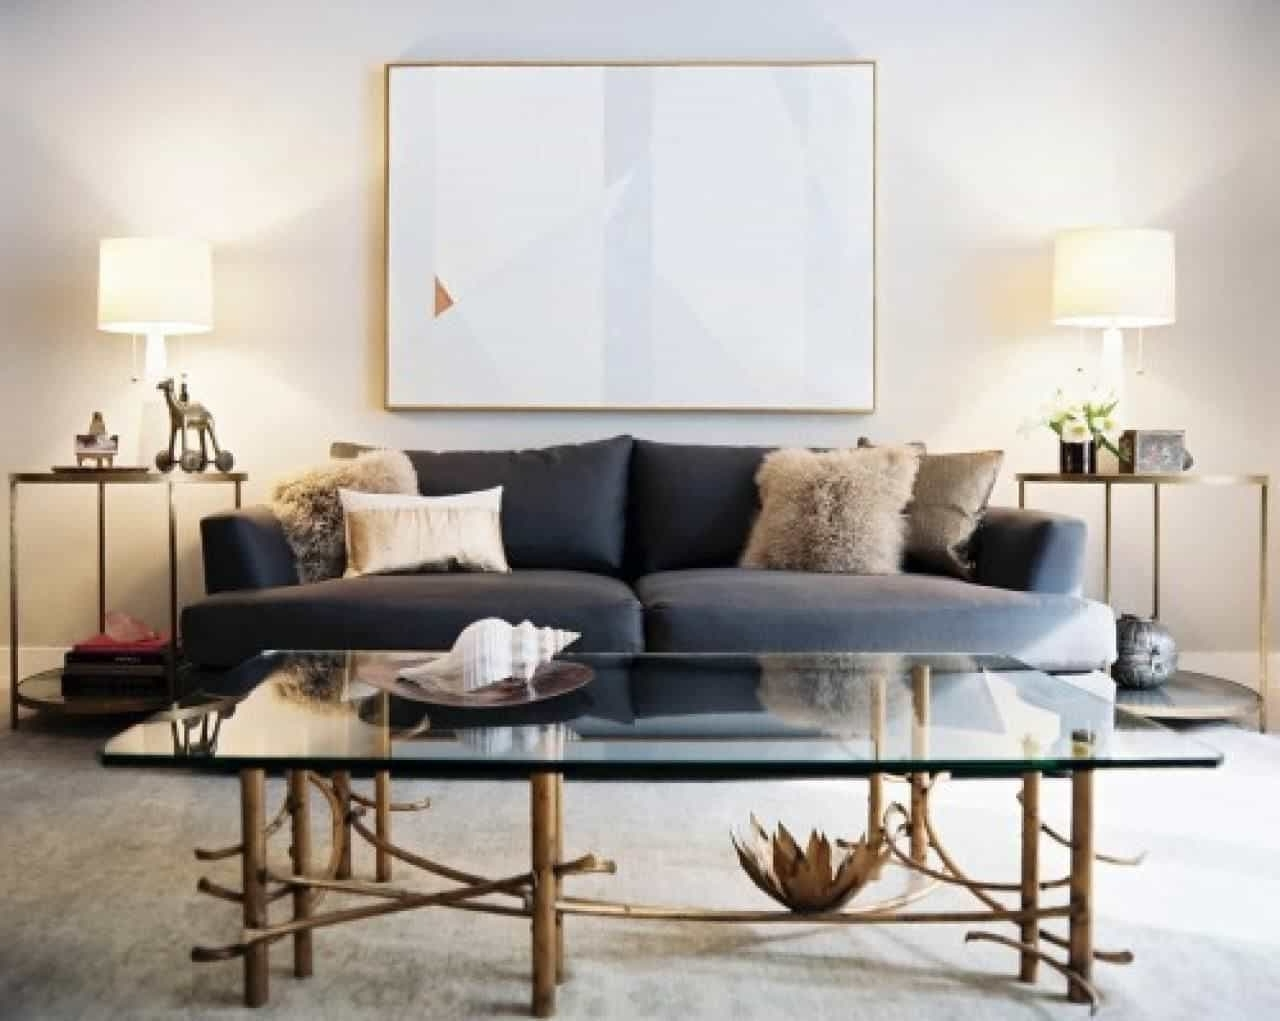 Recent Modern Living Room With Grey Sofa And Side Tables With Table Lamps Throughout Modern Living Room Table Lamps (Gallery 9 of 20)